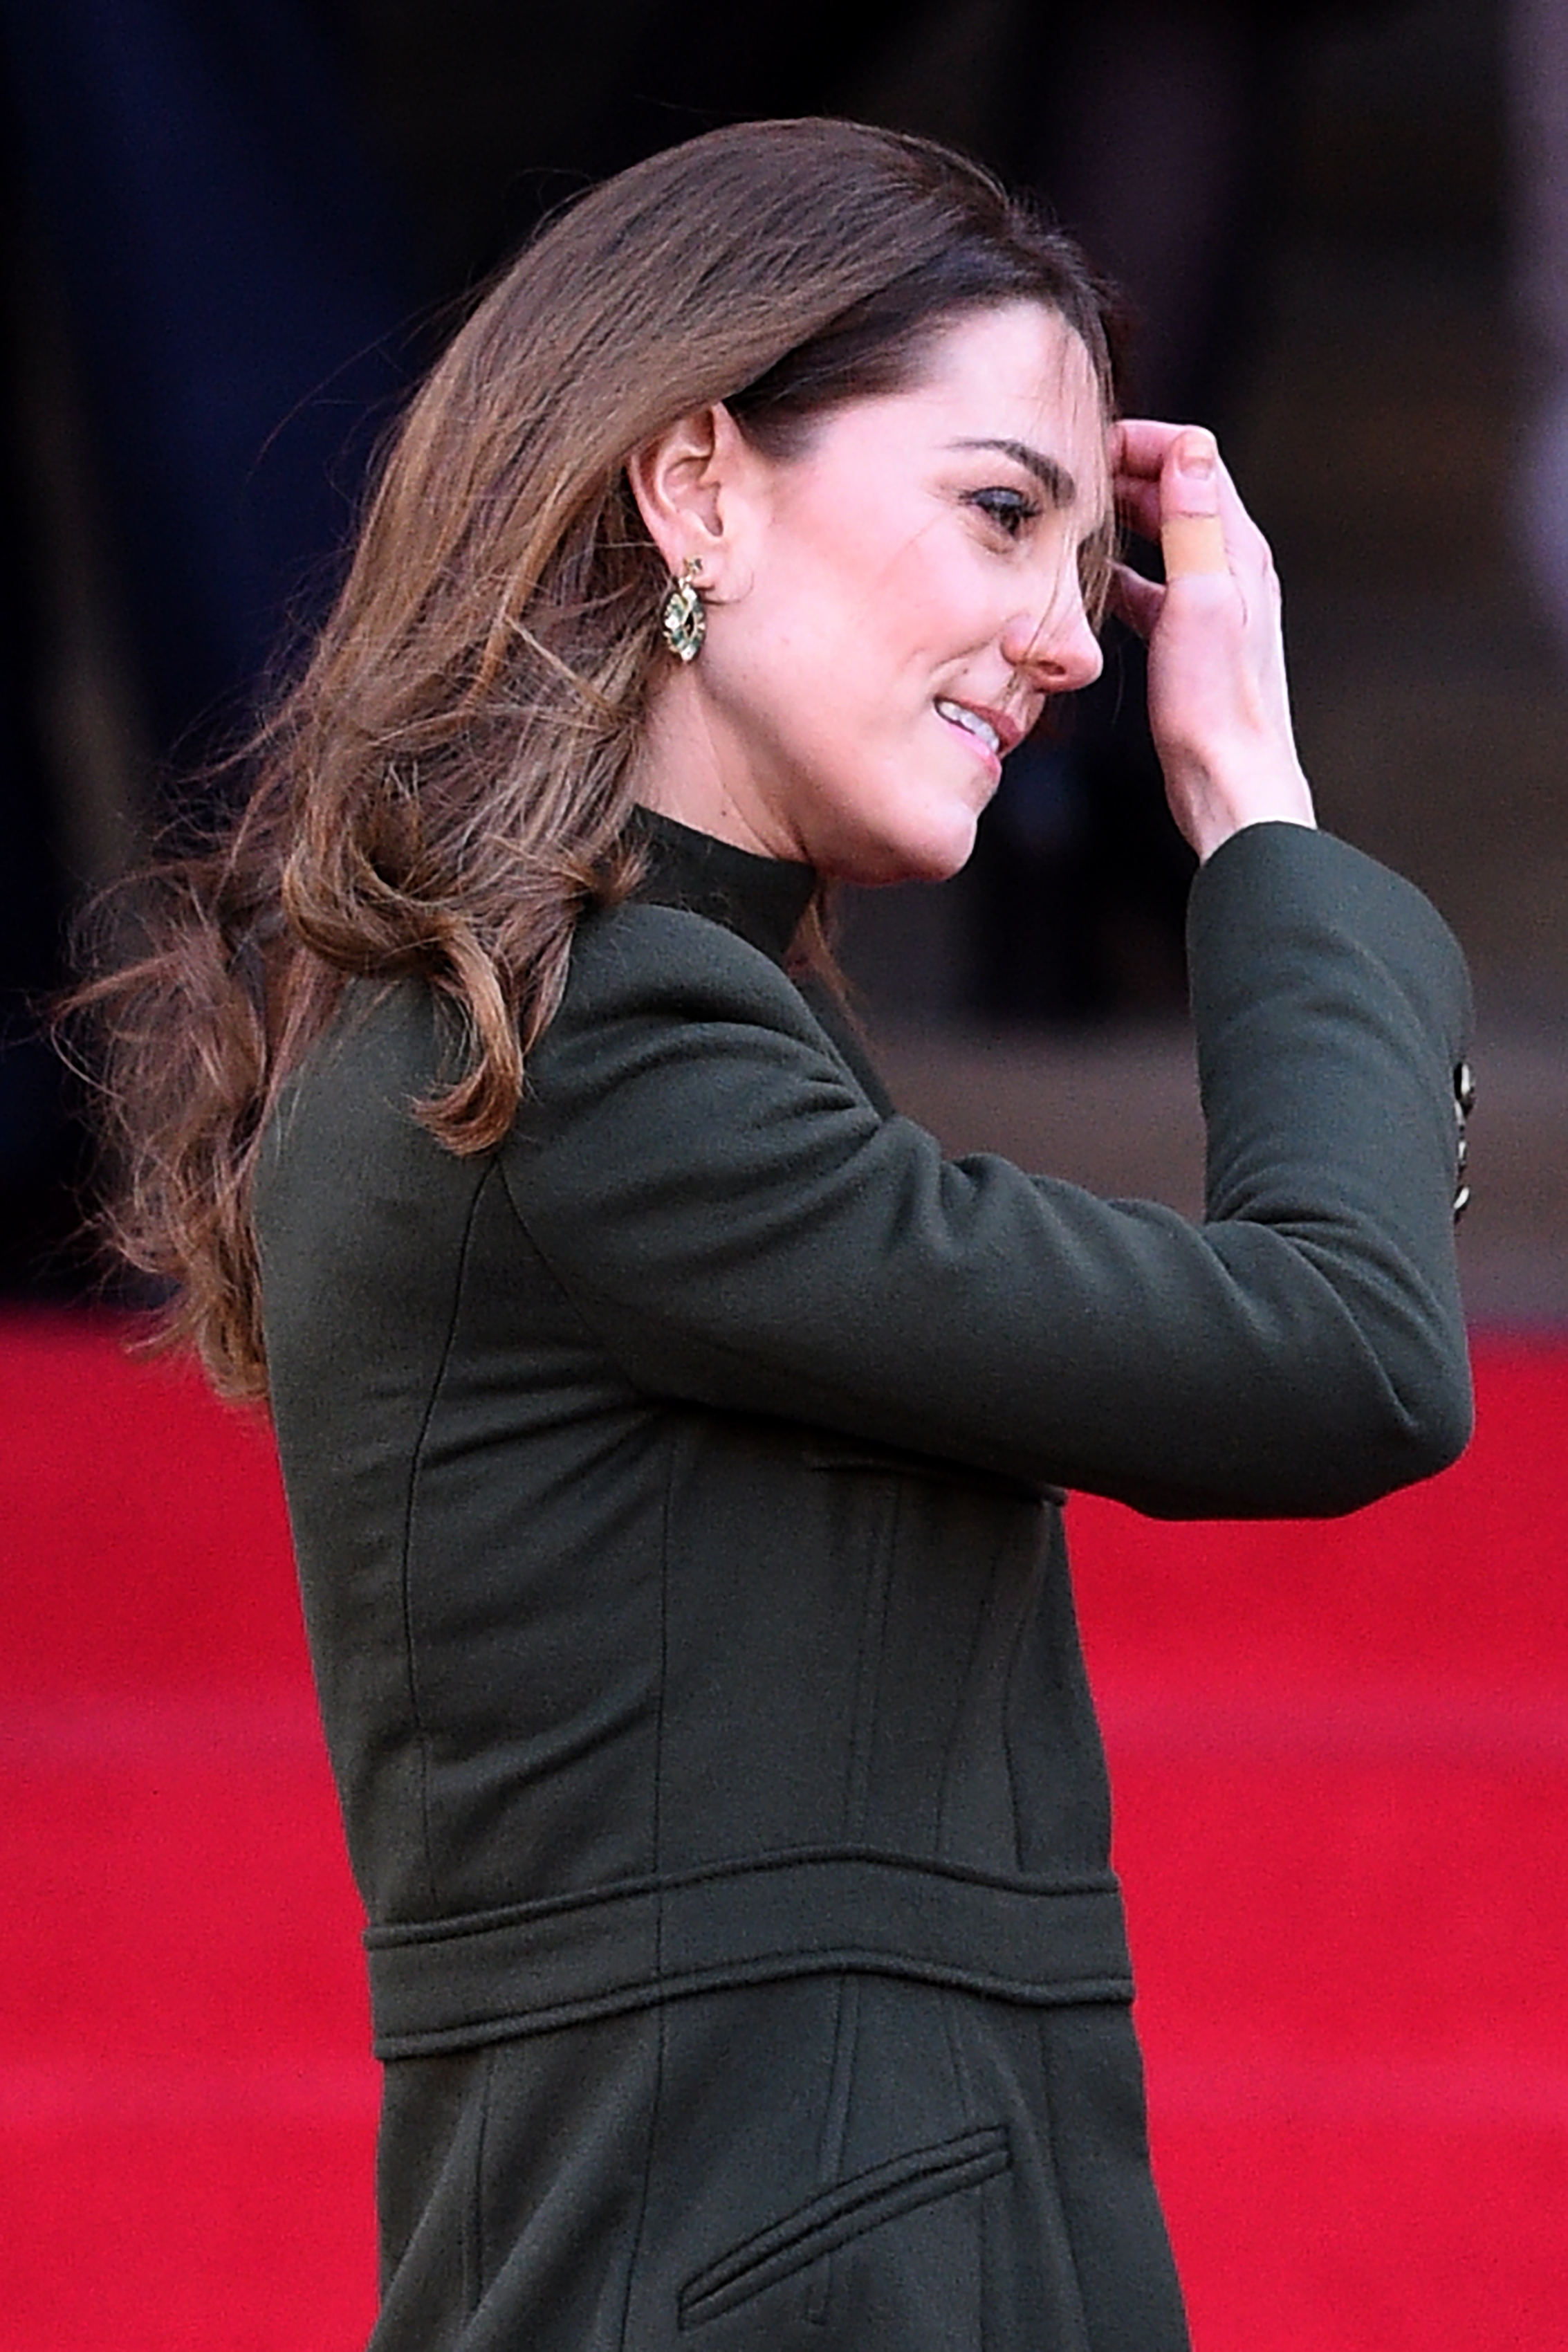 Britain's Catherine, Duchess of Cambridge arrives for a visit to City Hall in Centenary Square, Bradford on January 15, 2020, to meet young people and hear about their life in Bradford. (Photo by Oli SCARFF / AFP) (Photo by OLI SCARFF/AFP via Getty Images)